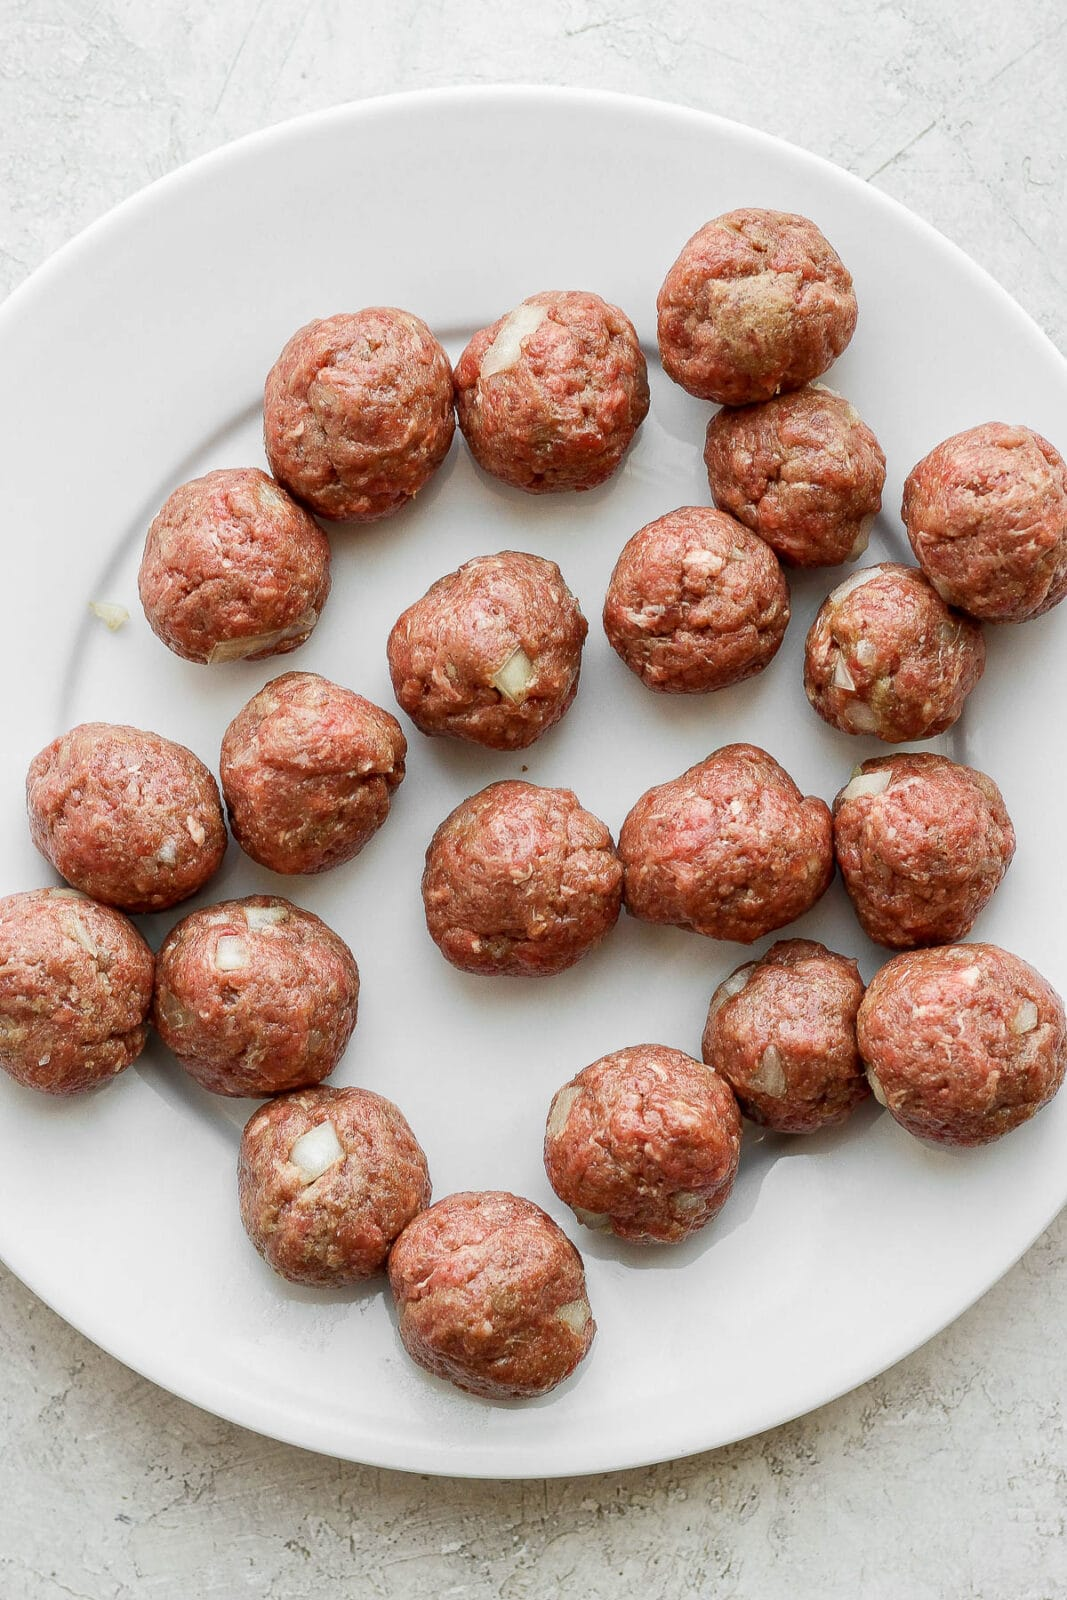 Plate of rolled meatballs before cooking.